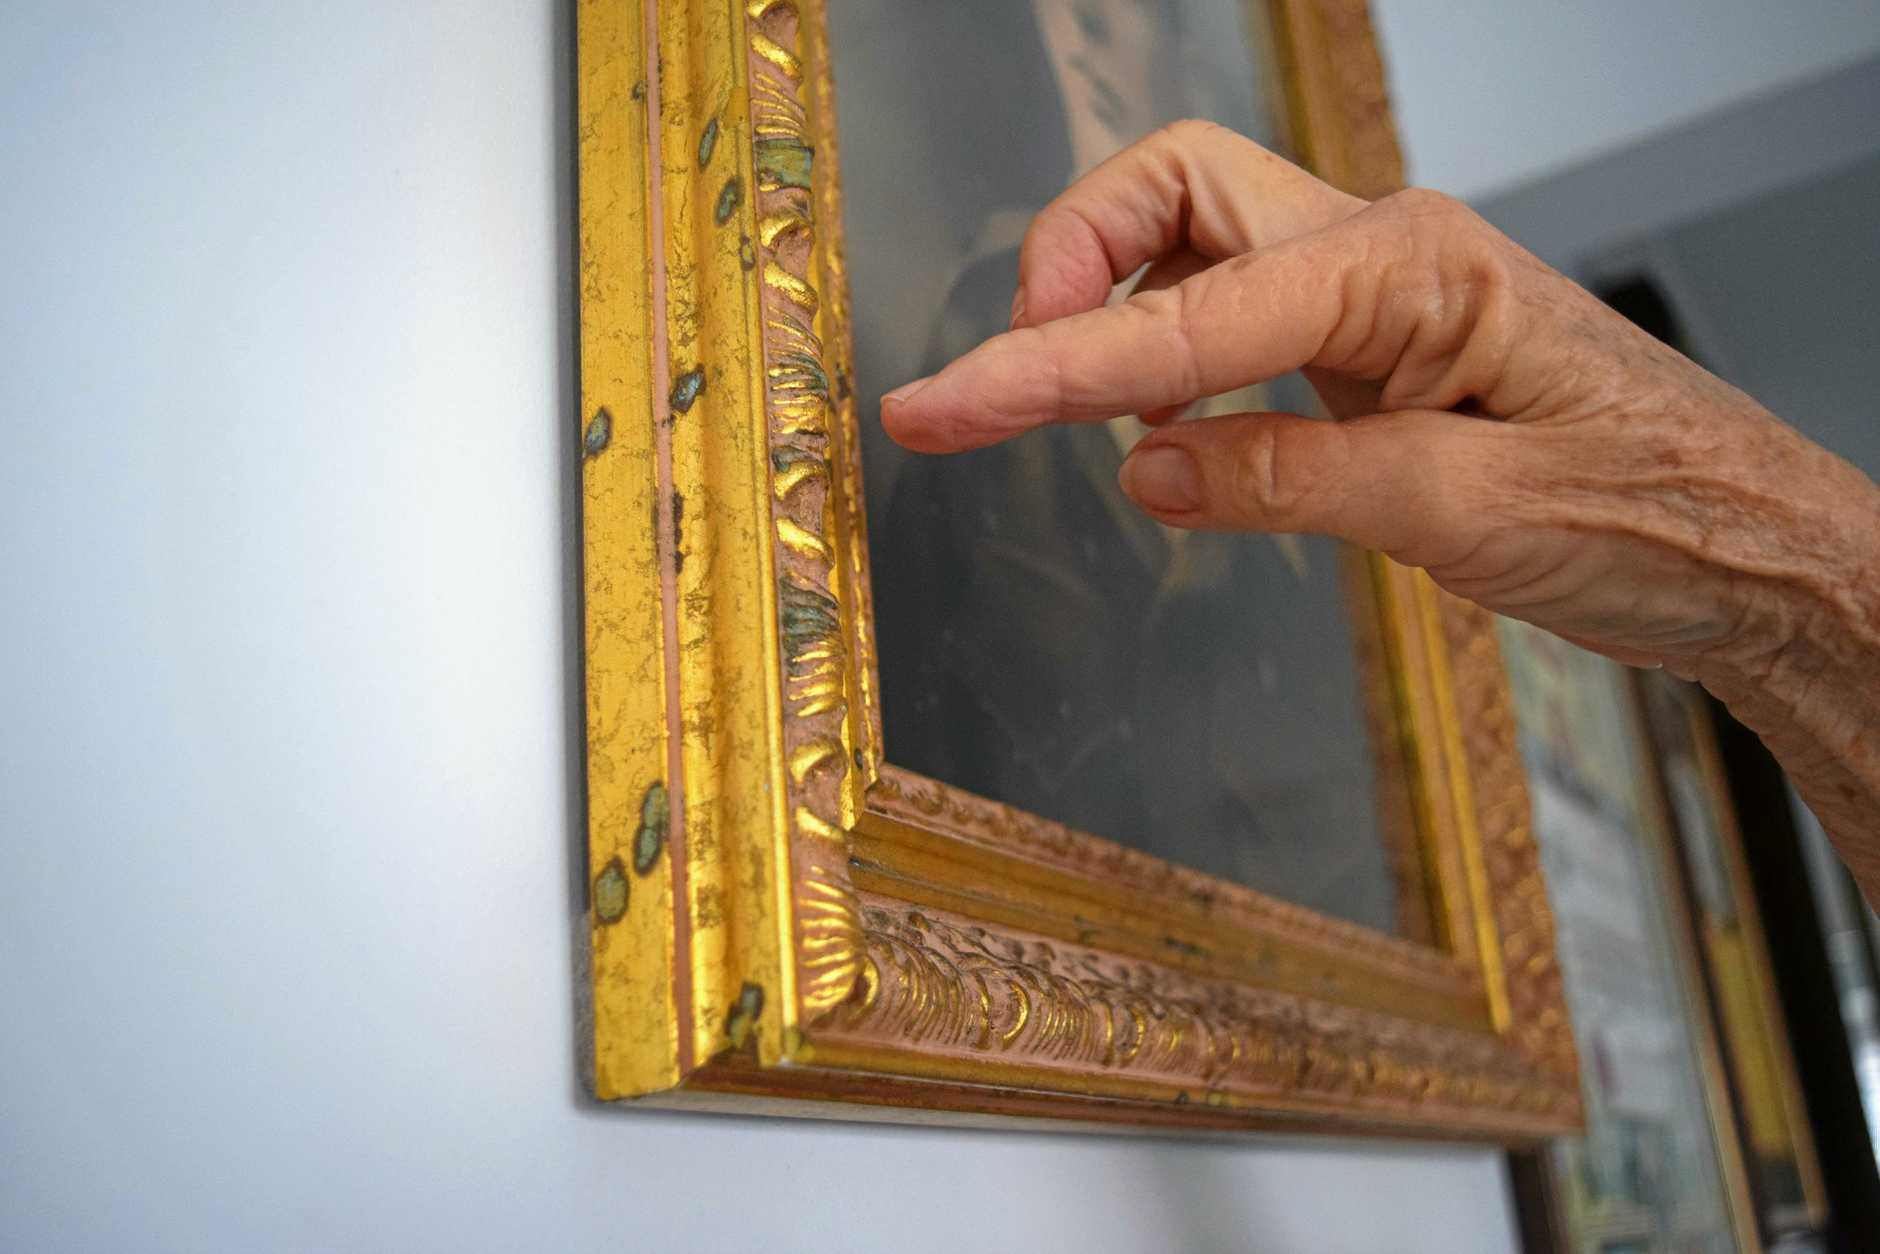 Palmview resident Susan Fry said salt water droplets had left blue marks on the gold frames of her portraits. She believes this is evidence of a concerning level of moisture in her home.